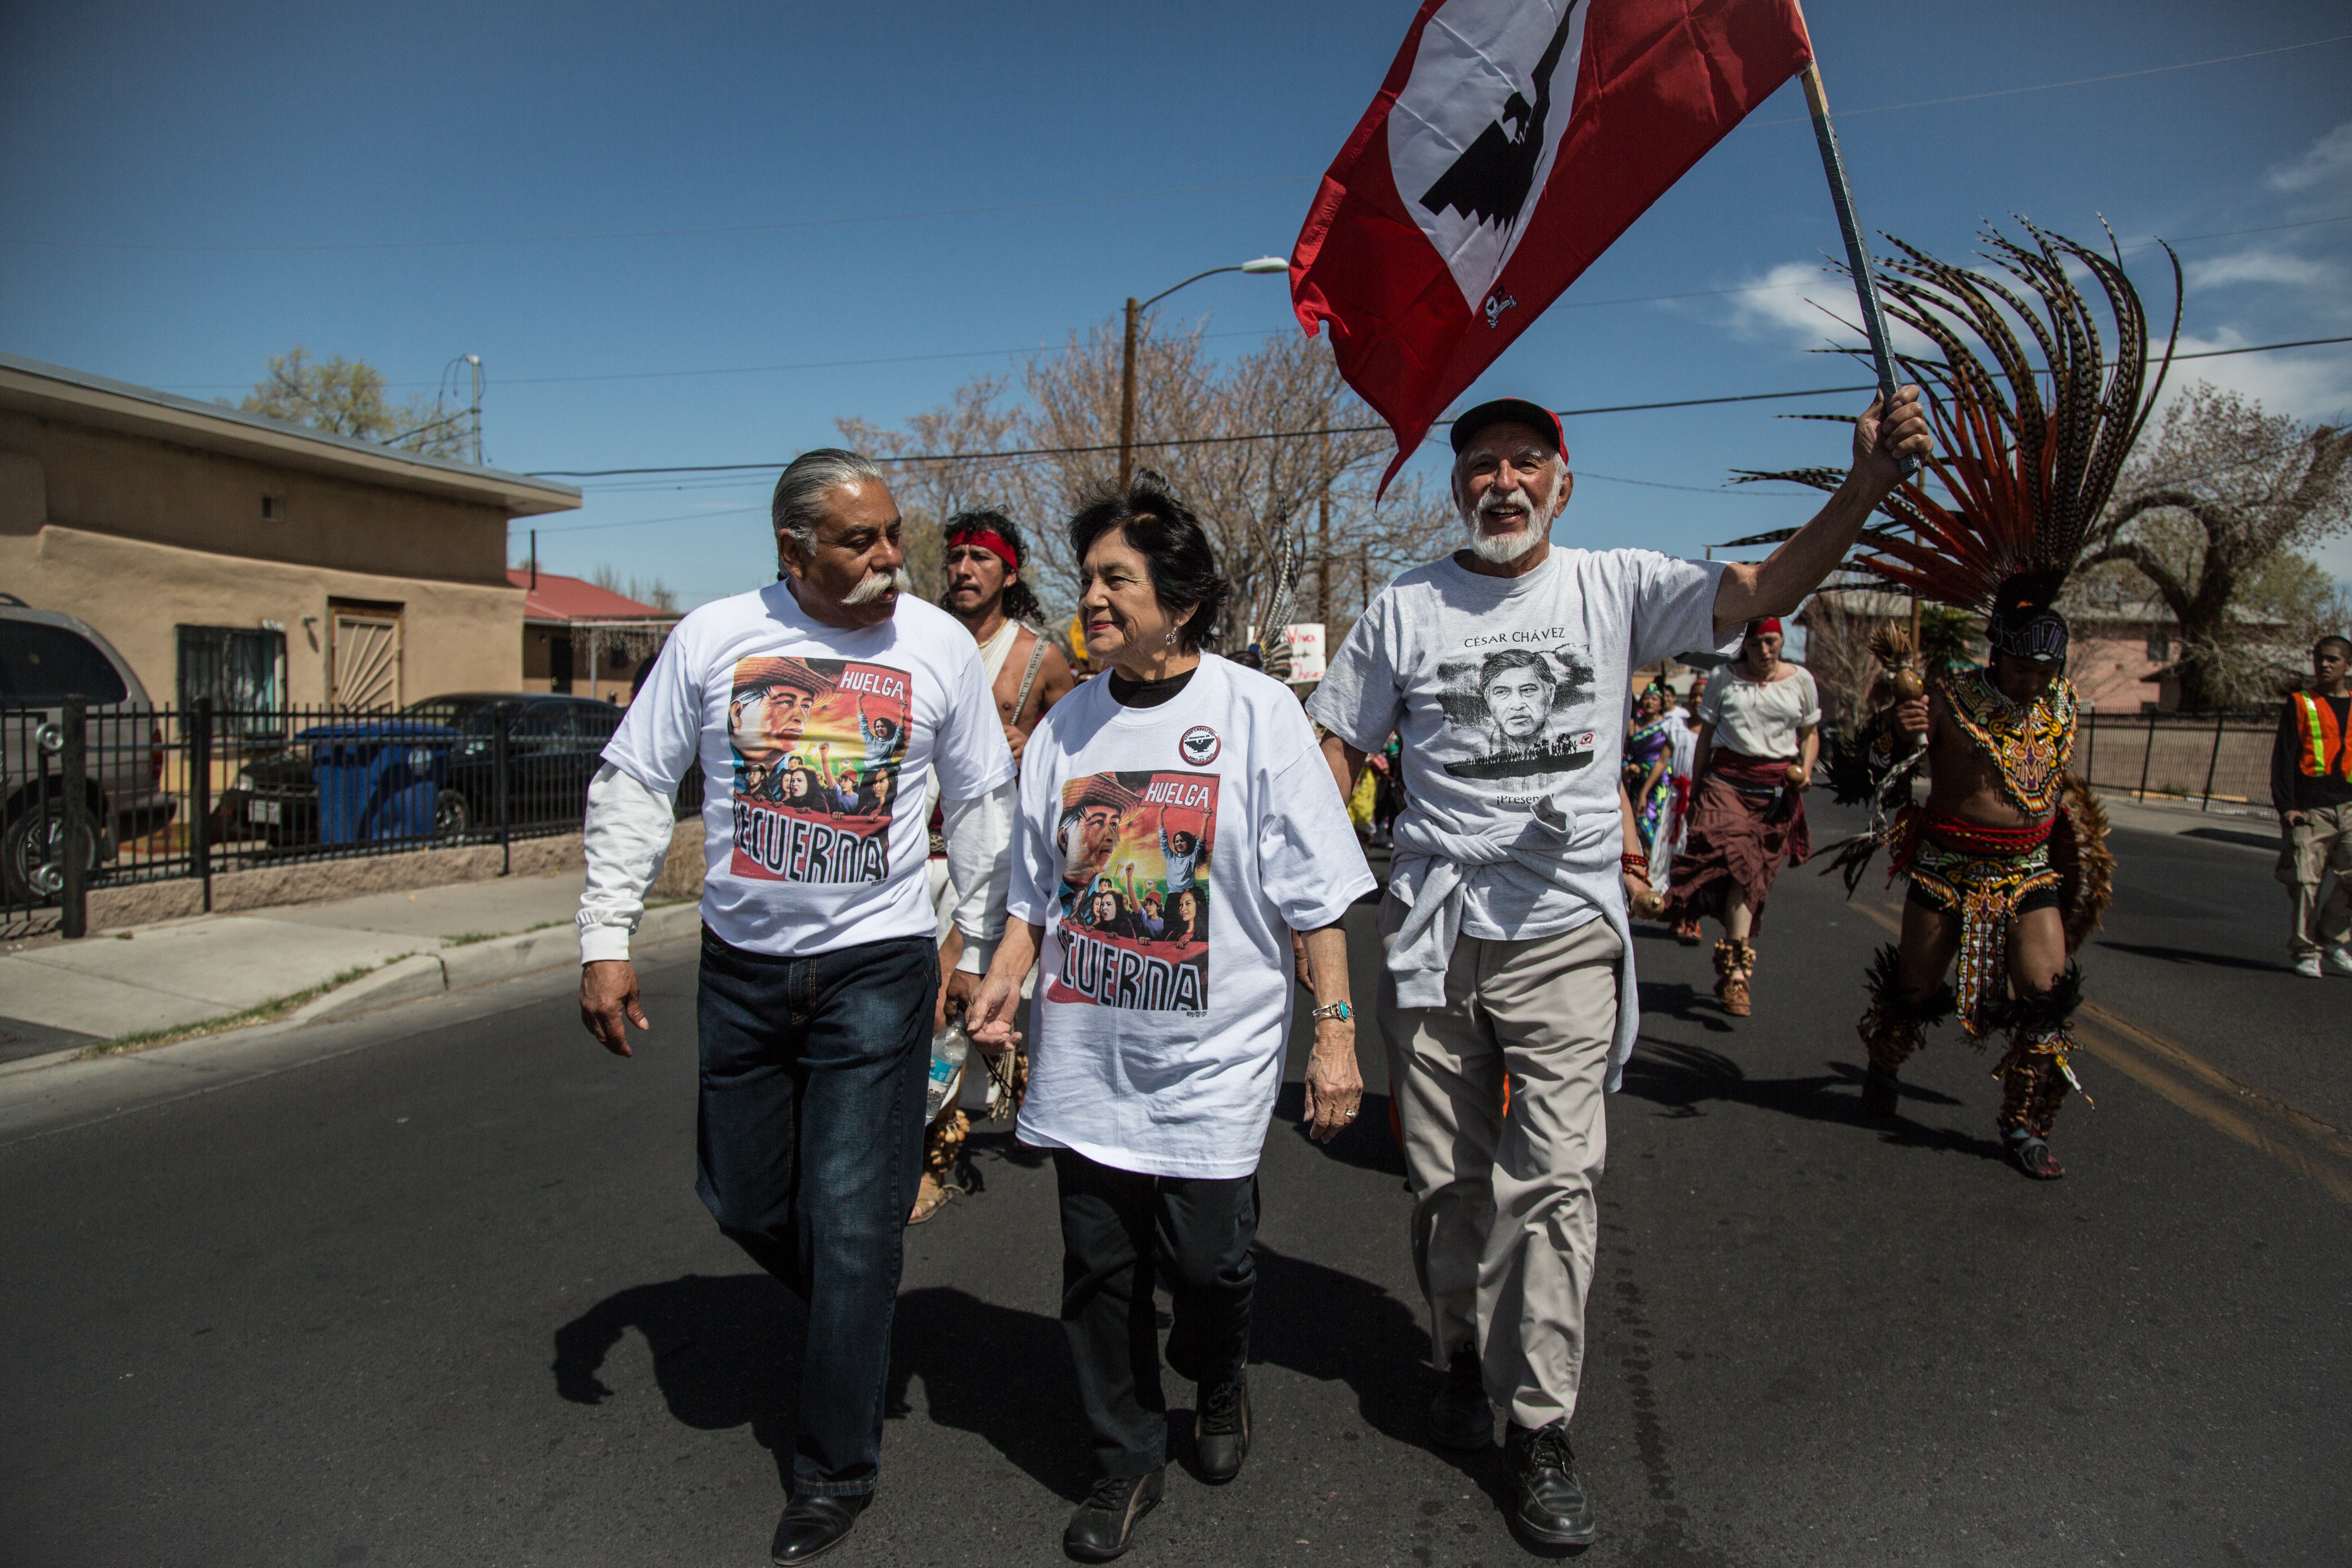 dolores huerta headlines twentieth annual c atilde copy sar ch atilde iexcl vez day dolores huerta ufw co founder lead saturday s for justice in